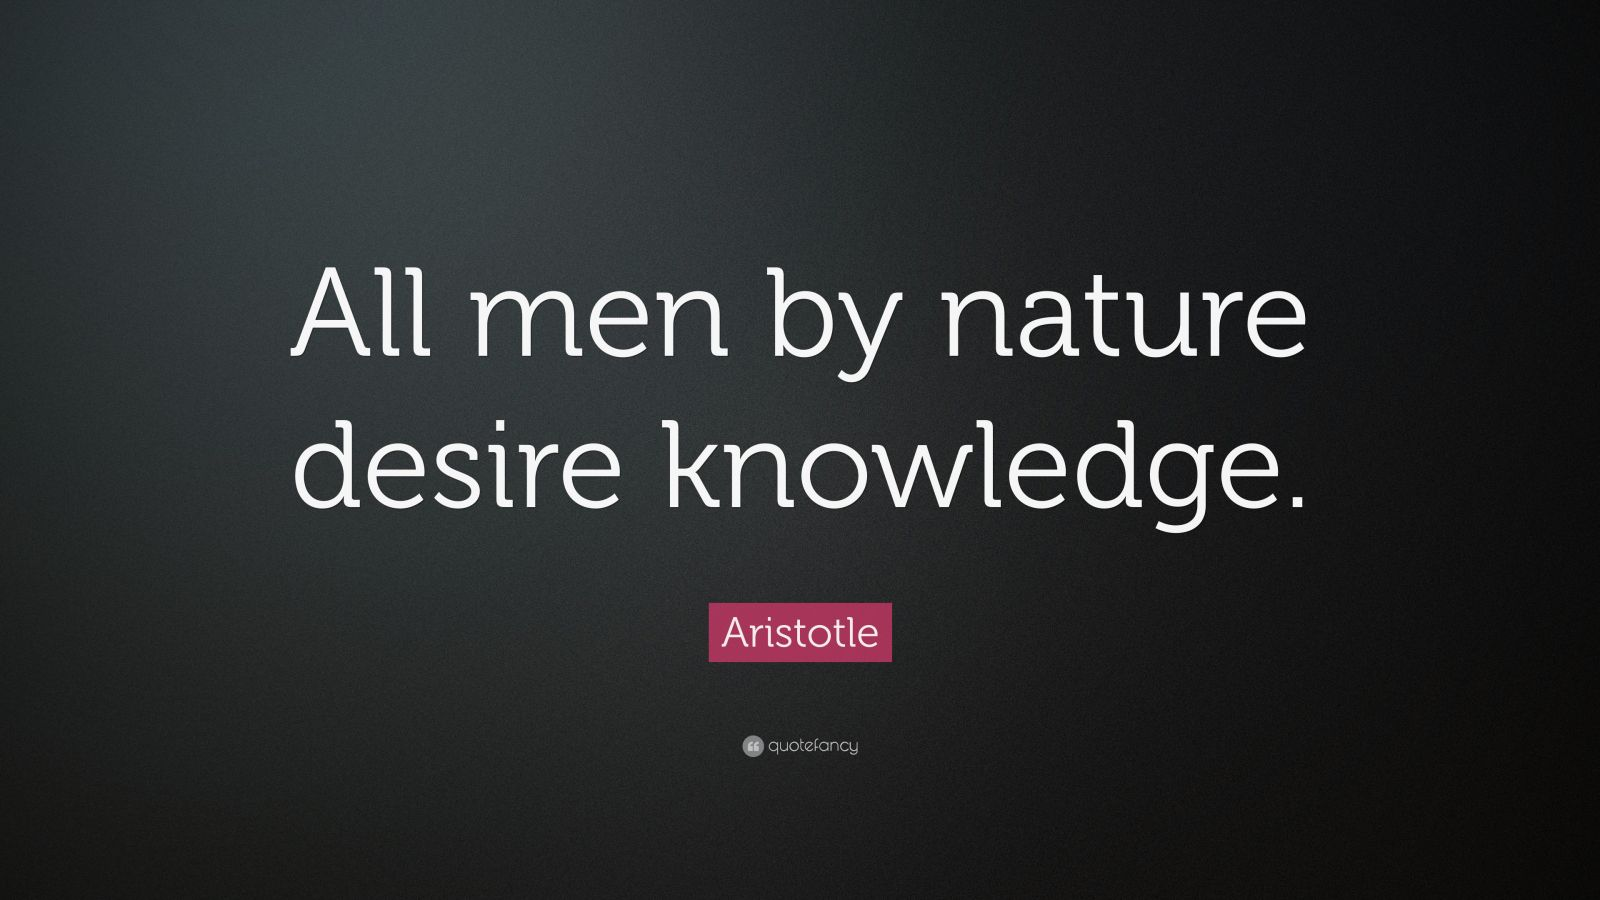 all men by nature desire knowledge Buy 'all men by nature desire knowledge' by bigsermons as a t-shirt, classic t-shirt, tri-blend t-shirt, lightweight hoodie, women's fitted scoop t-shirt, women's fitted v-neck t-shirt, women's relaxed fit t-shirt, graphic t-shirt, women's.